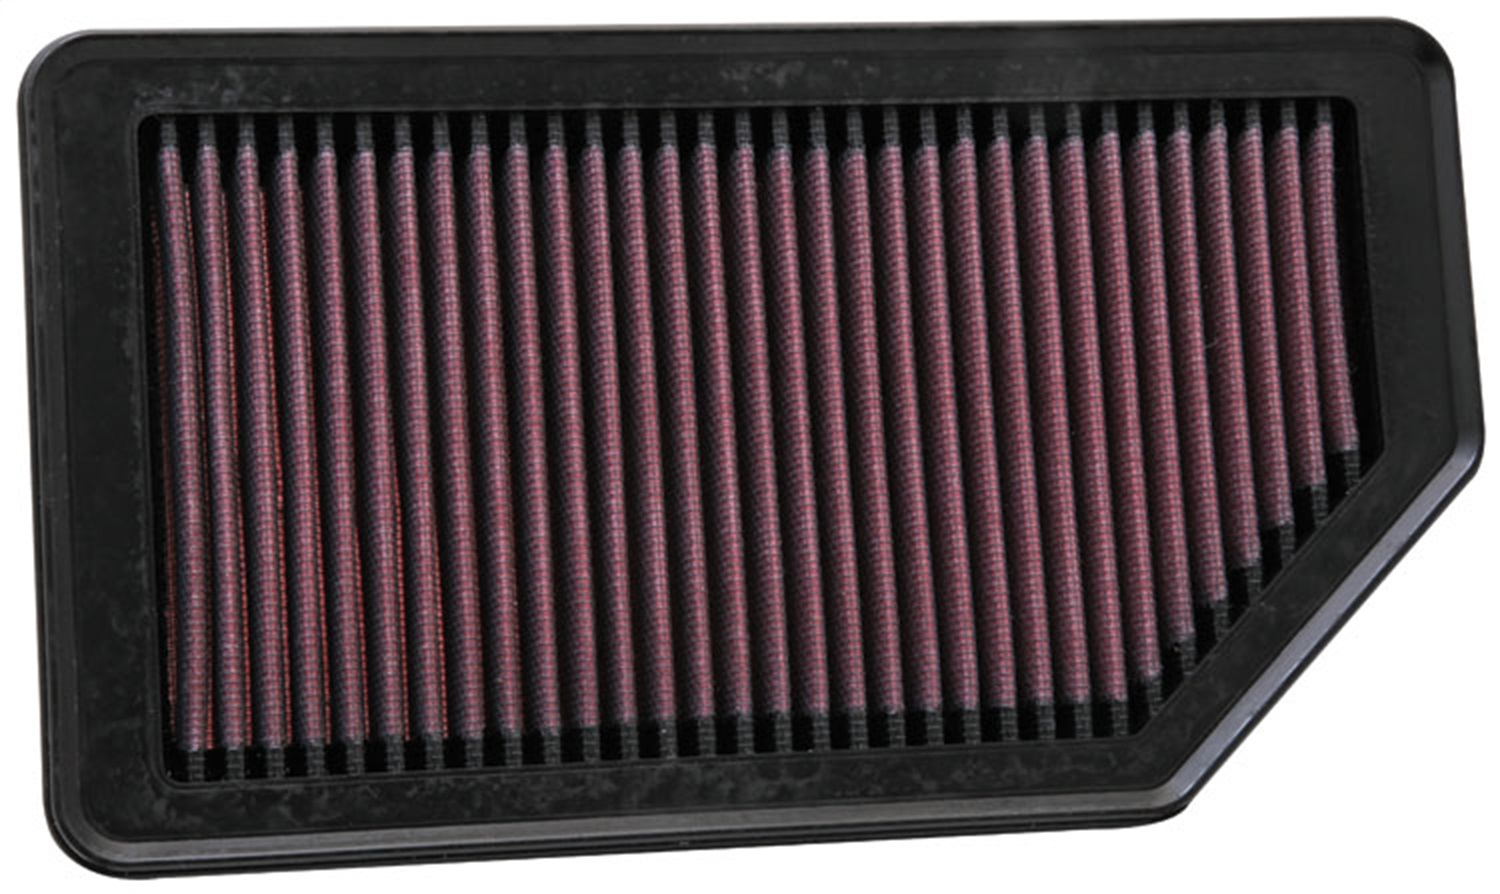 K&N Filters 33-2472 Air Filter Fits 11-15 Accent Rio Soul Veloster 33-2472